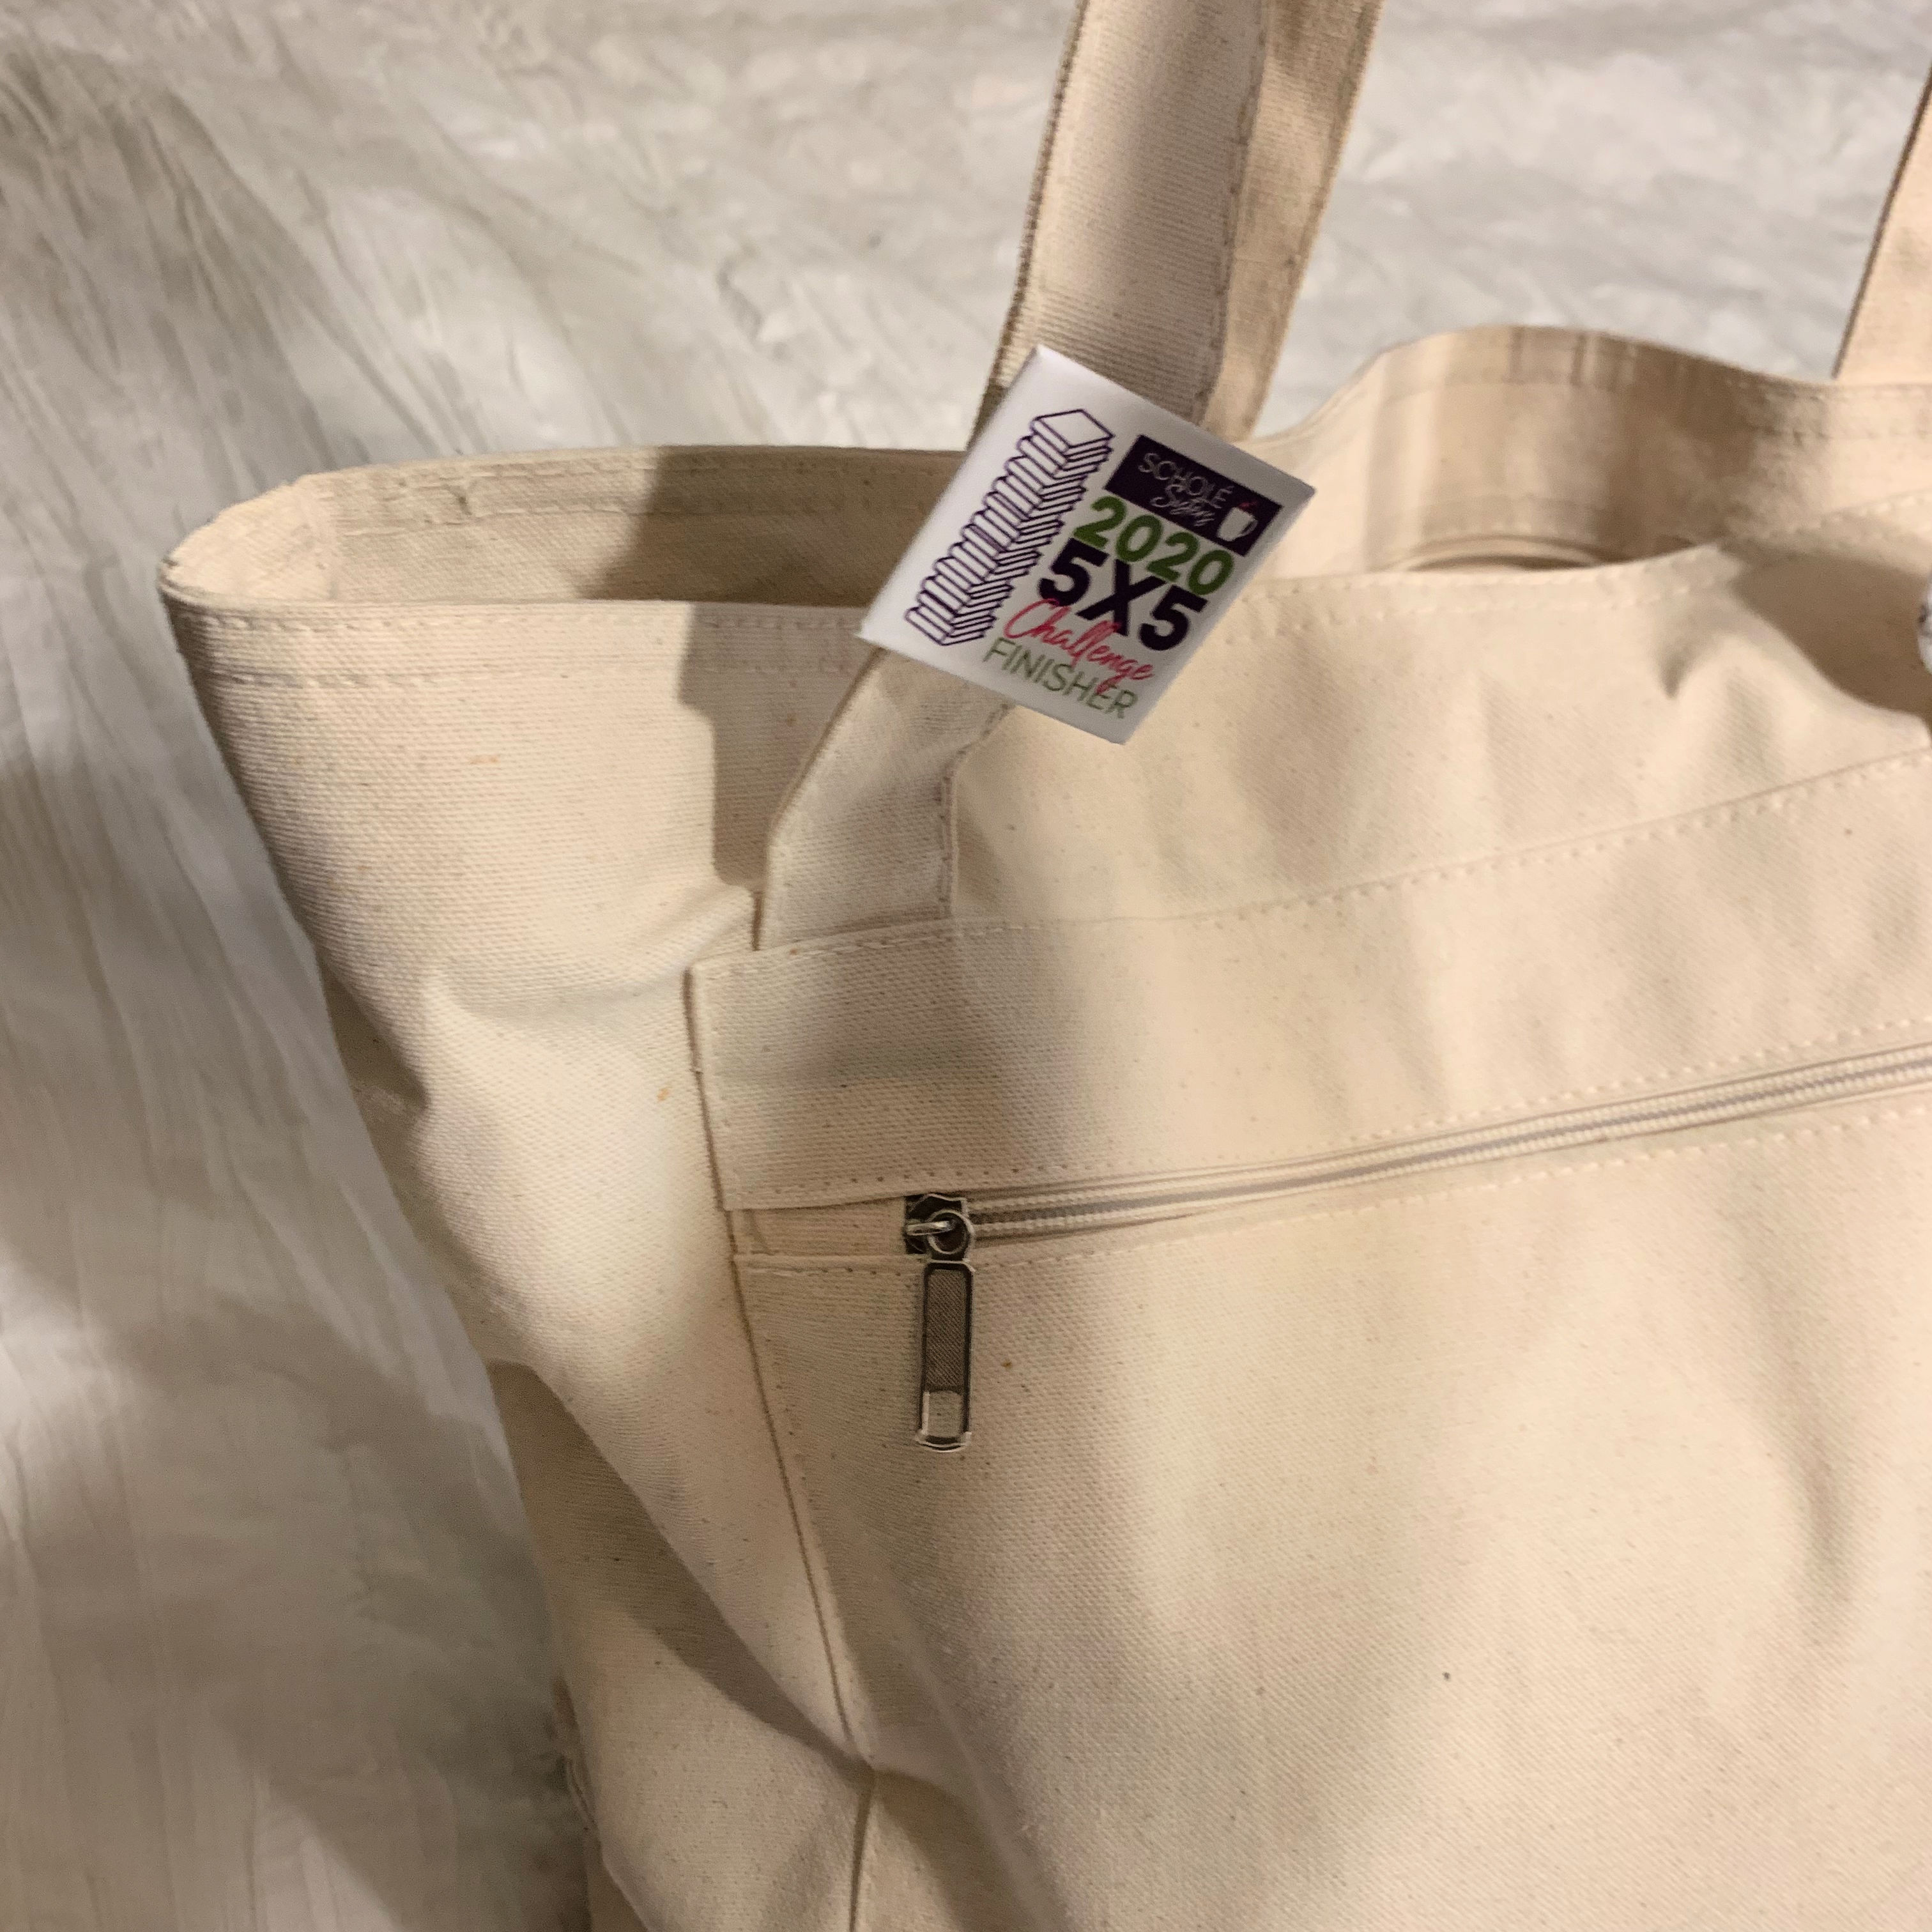 bag-zipper1